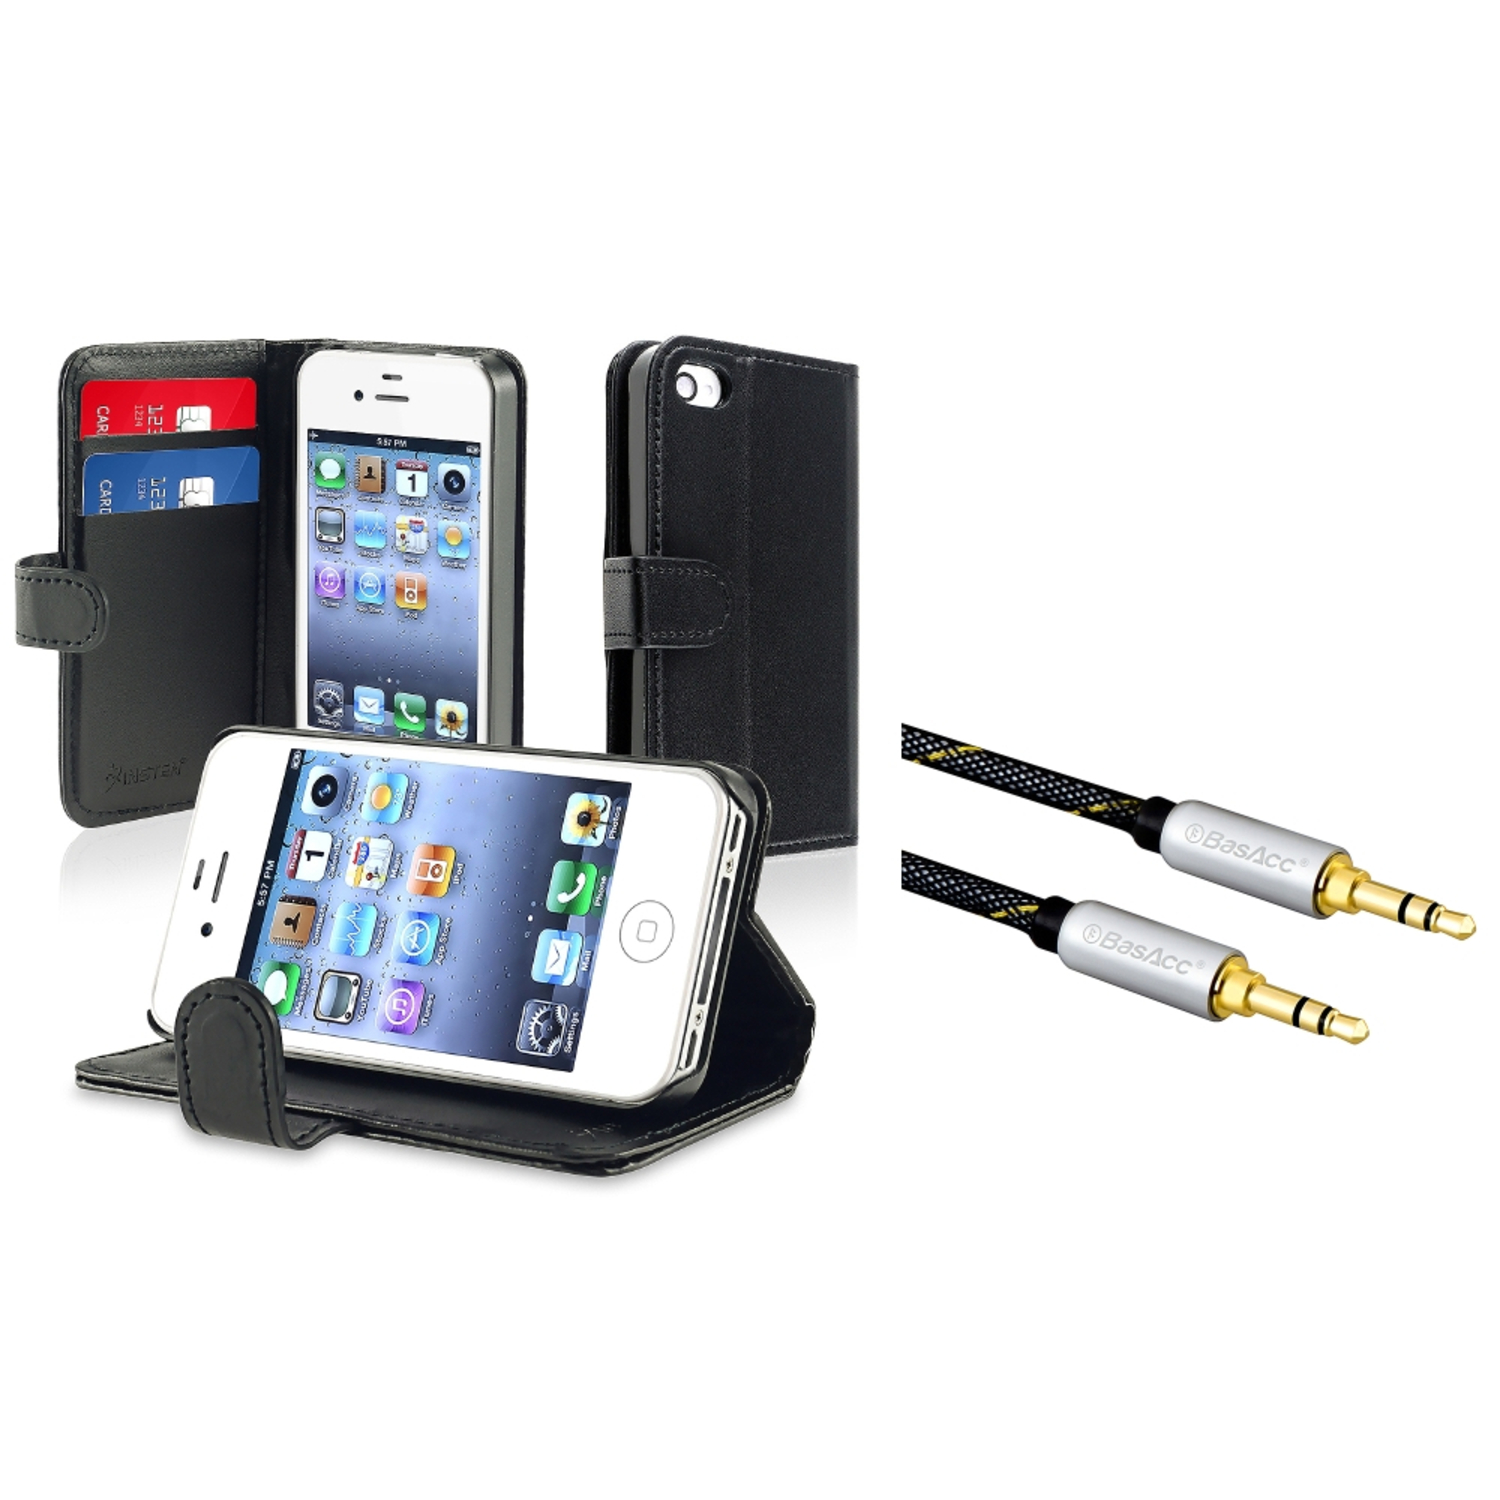 Insten Wallet Leather Case for iPhone 4 / 4S AT&T / Verizon, Black (+ 3.5mm Audio Cable)